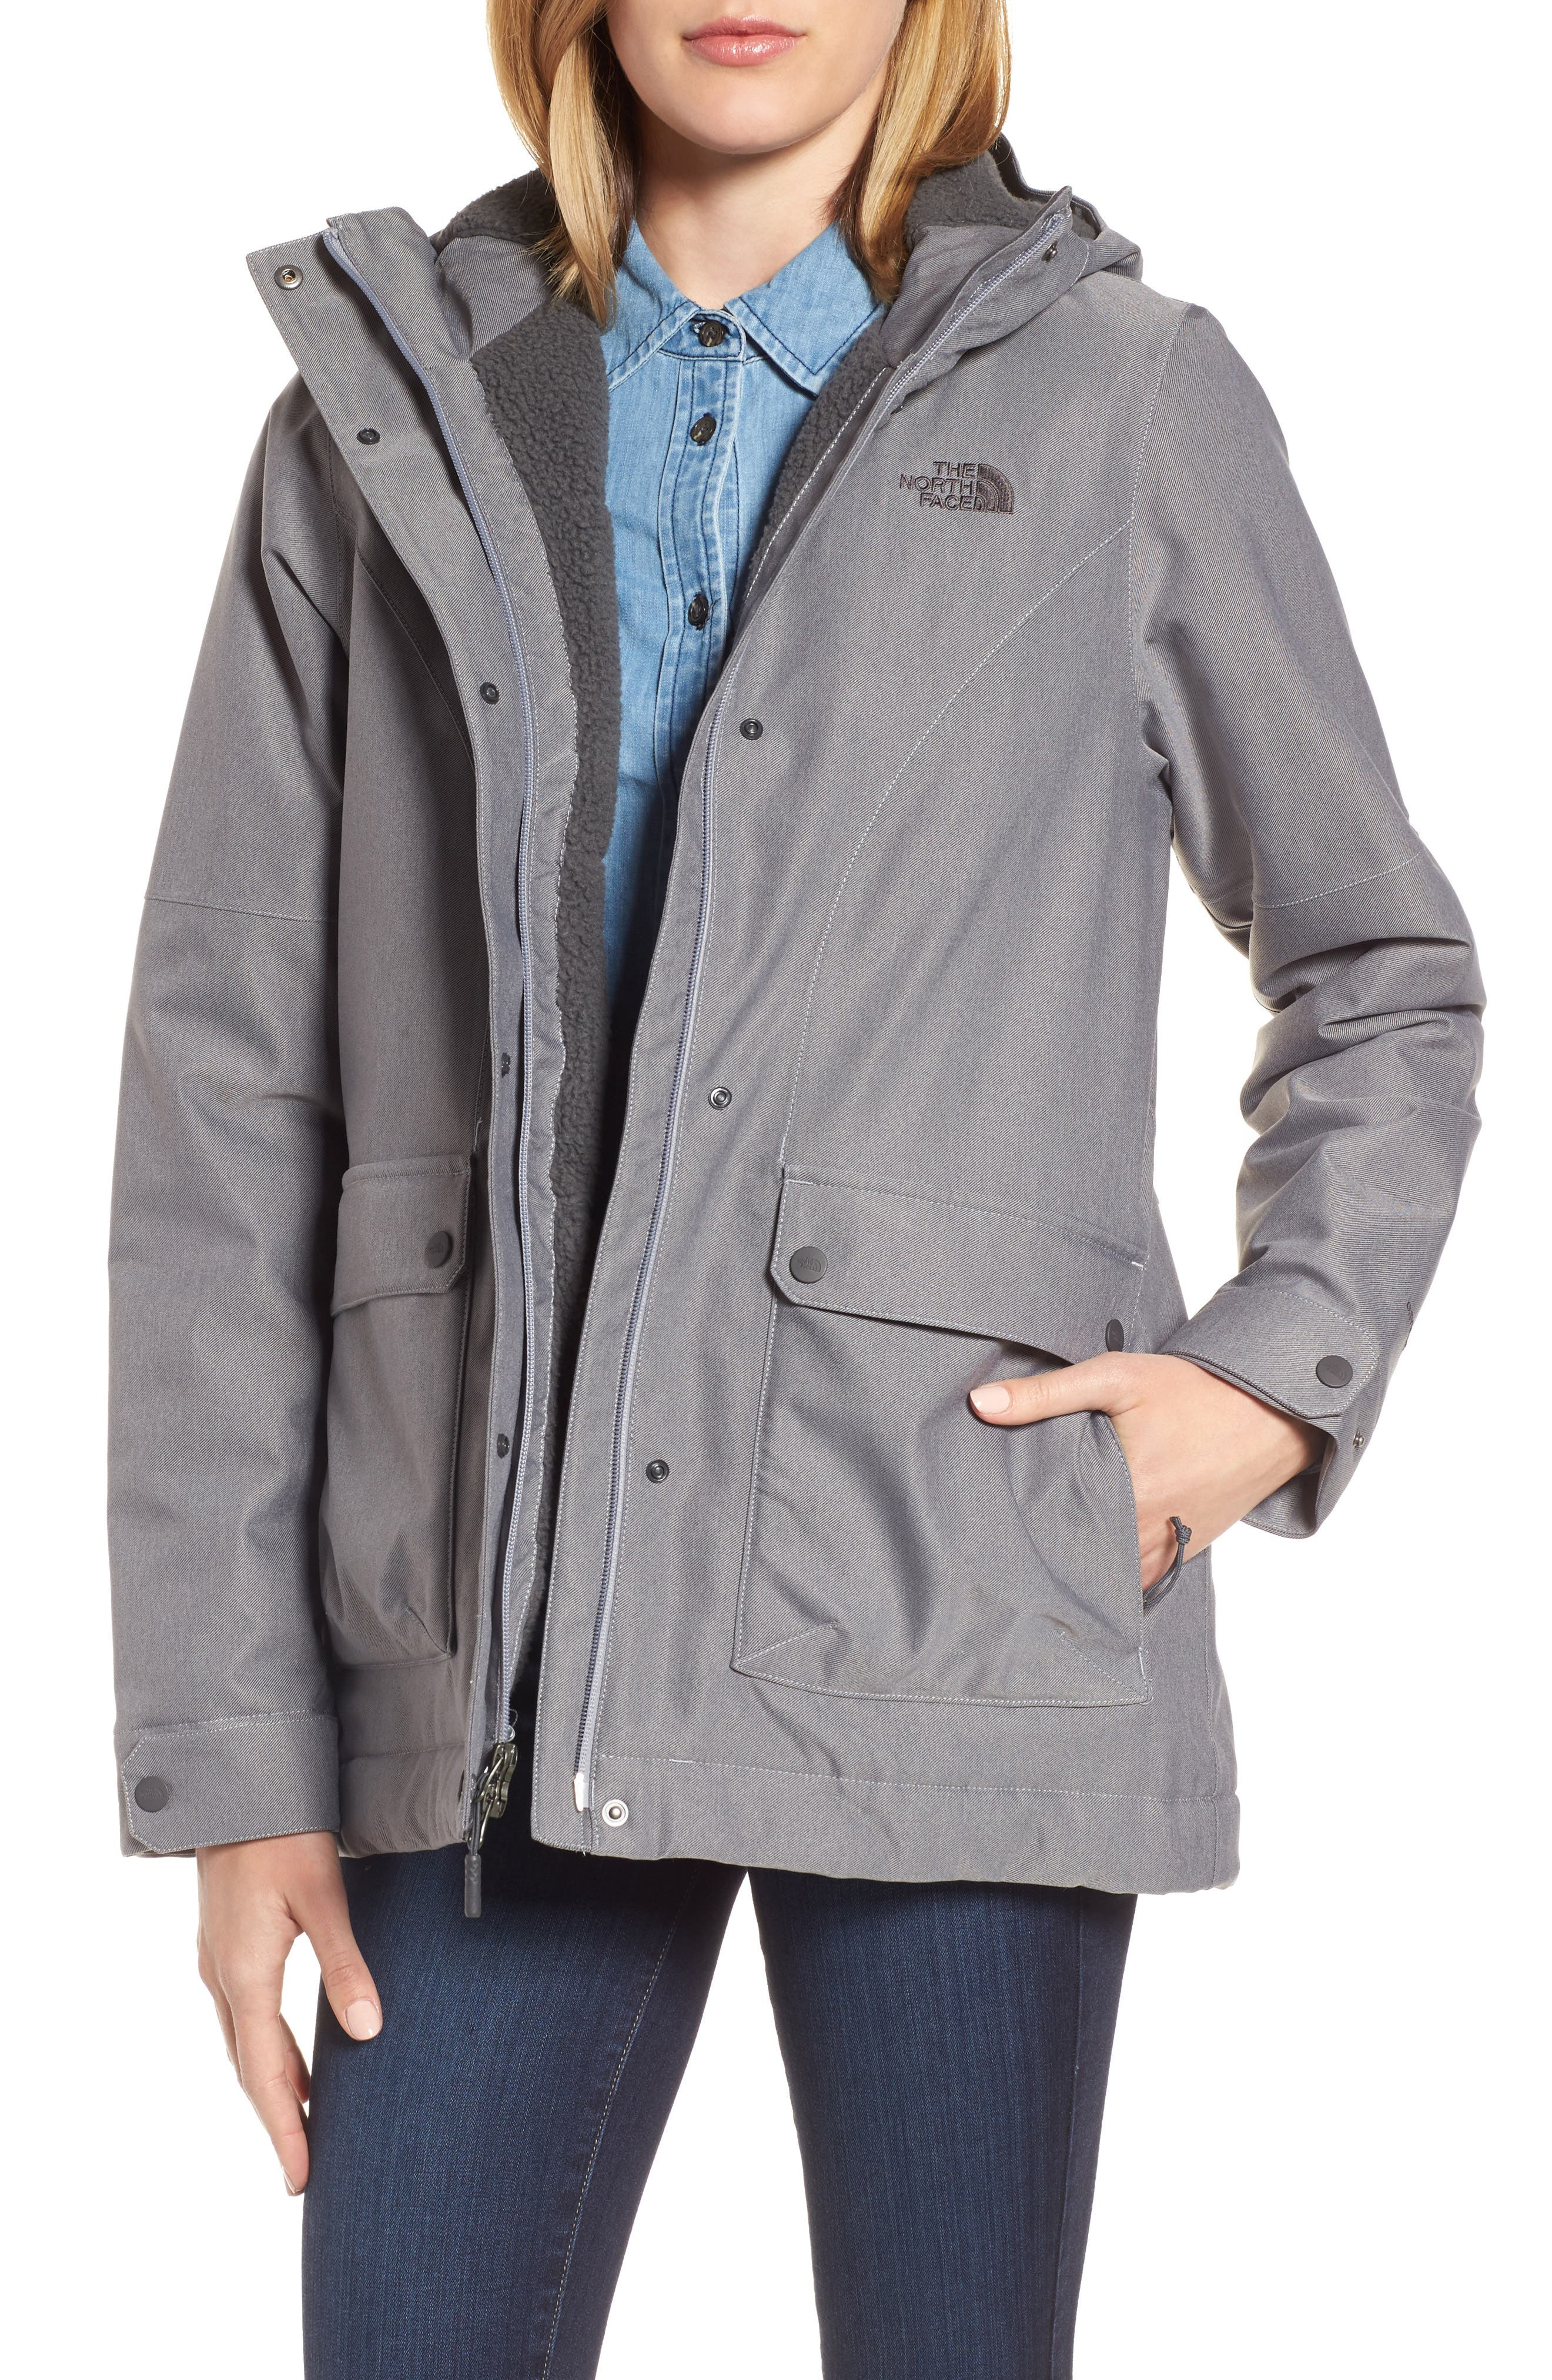 Alternate Image 1 Selected - The North Face Firesyde Field Jacket